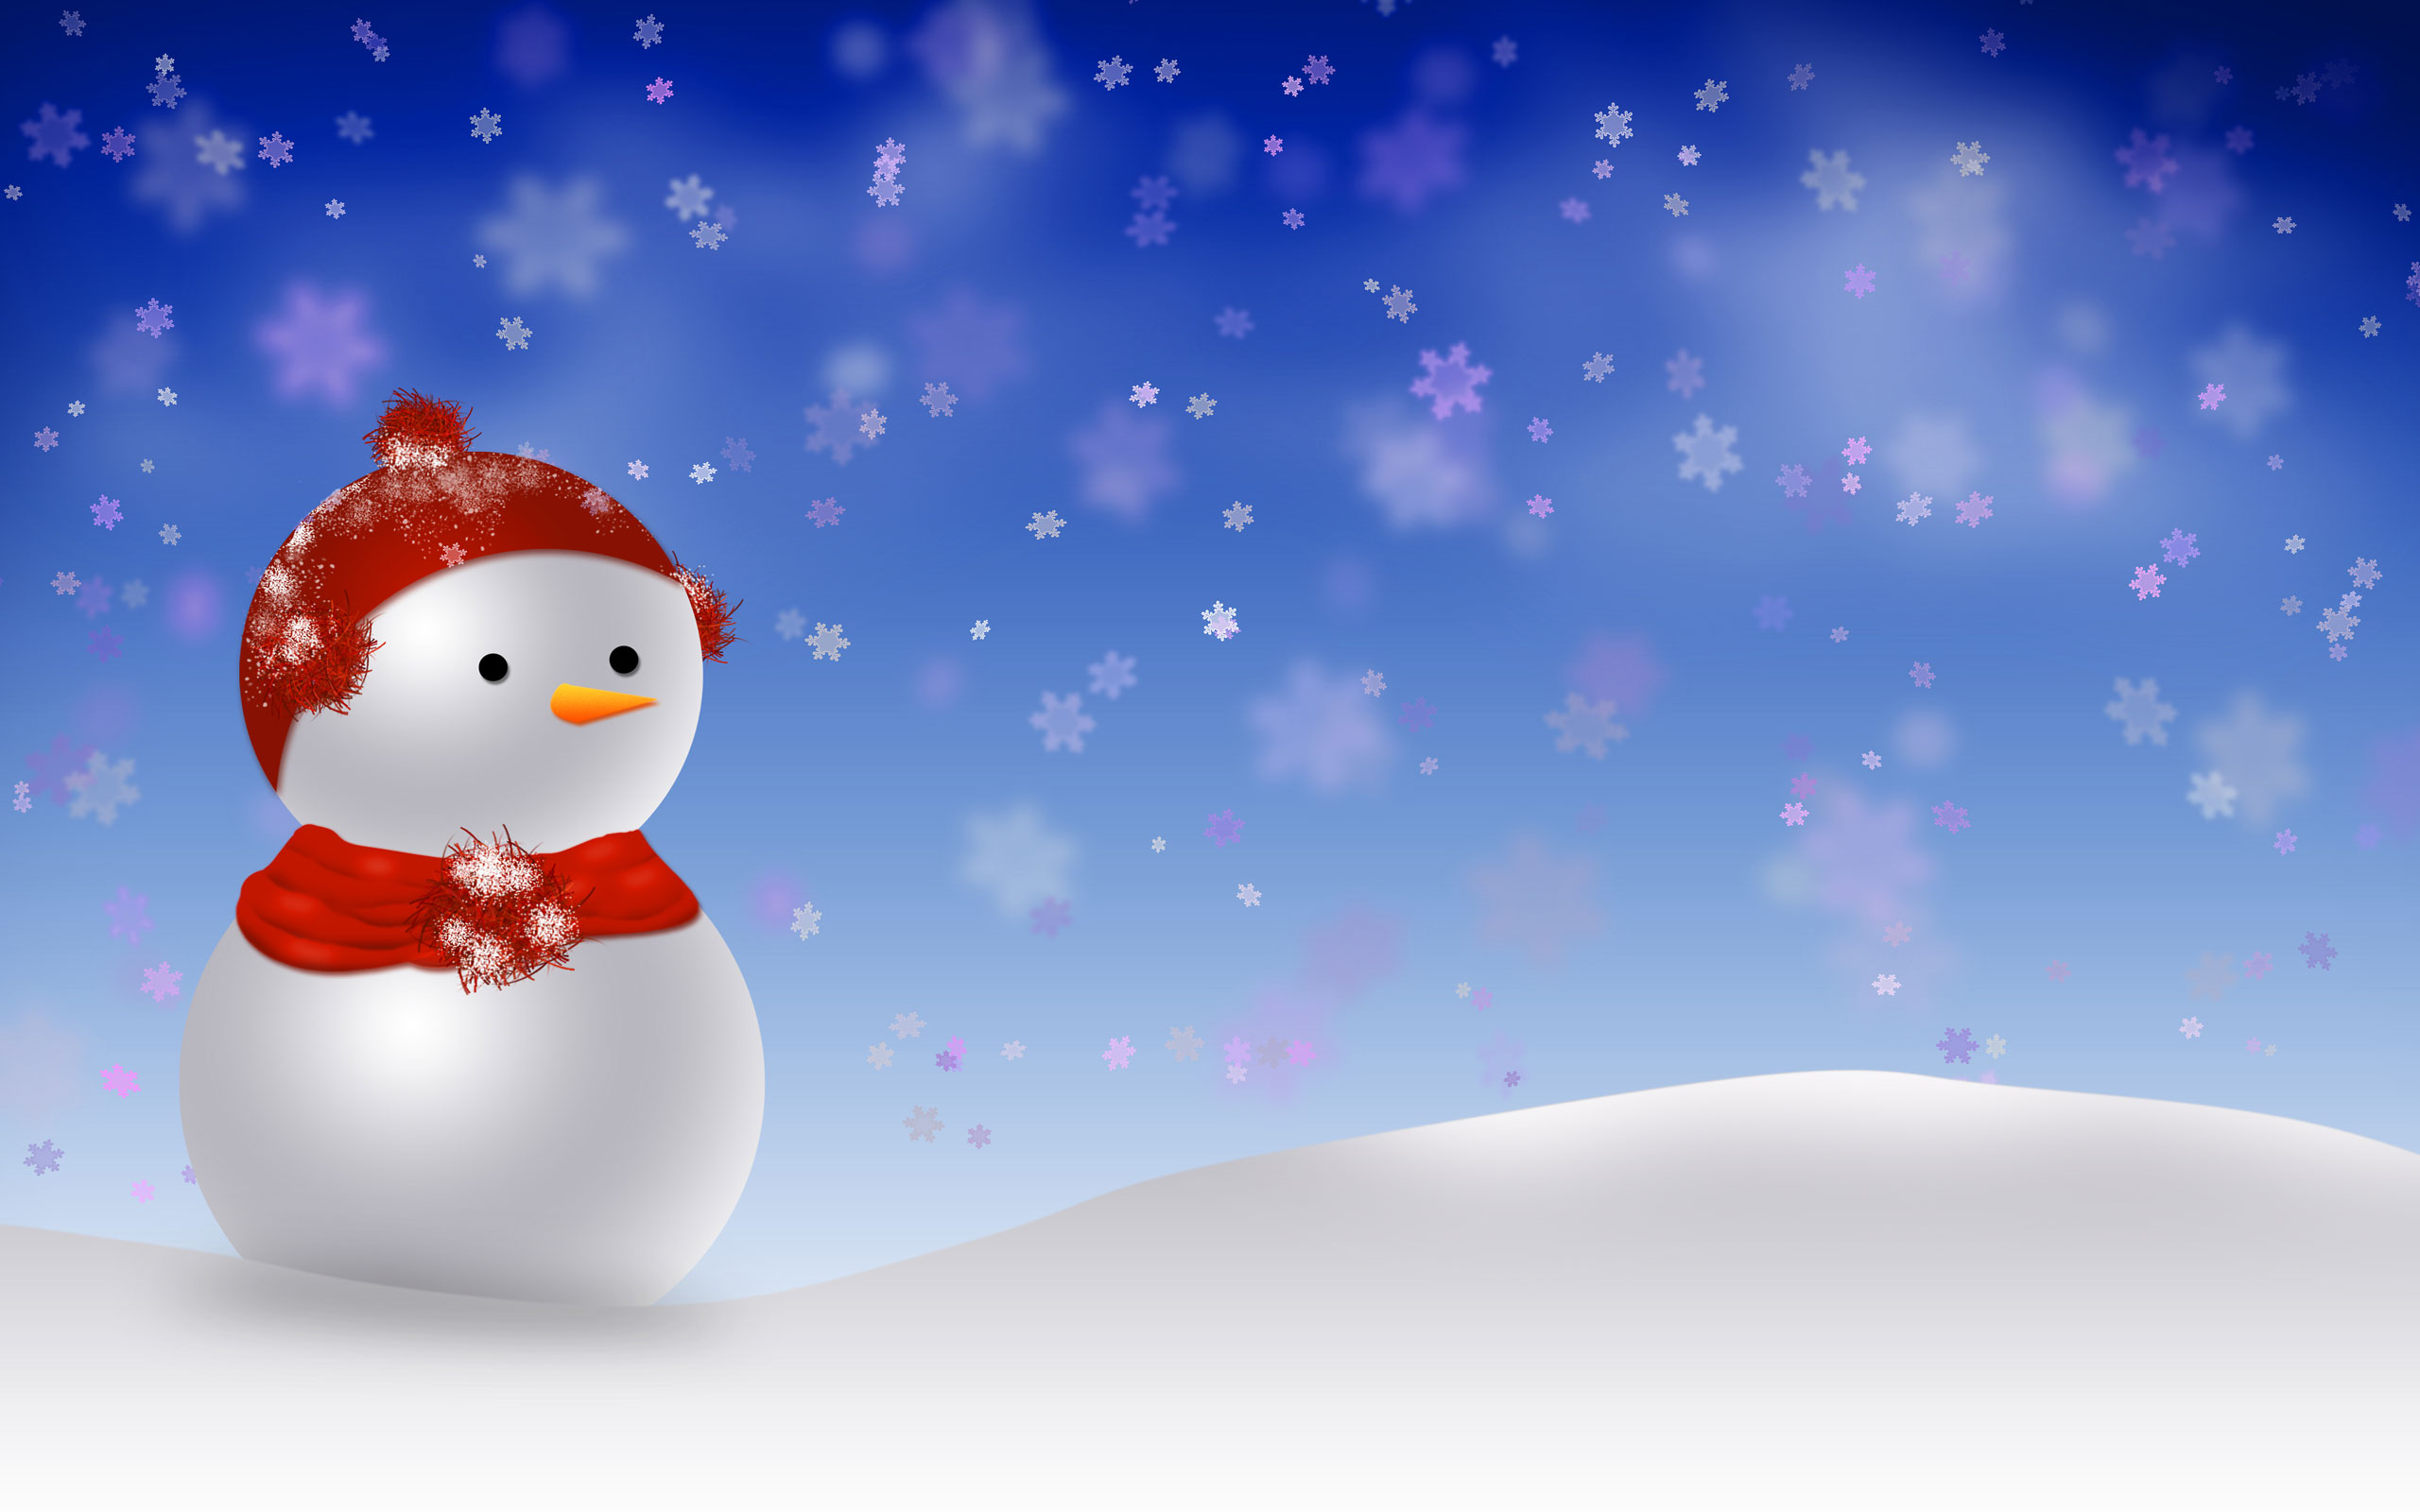 Free Snowman Wallpapers Group (80+)